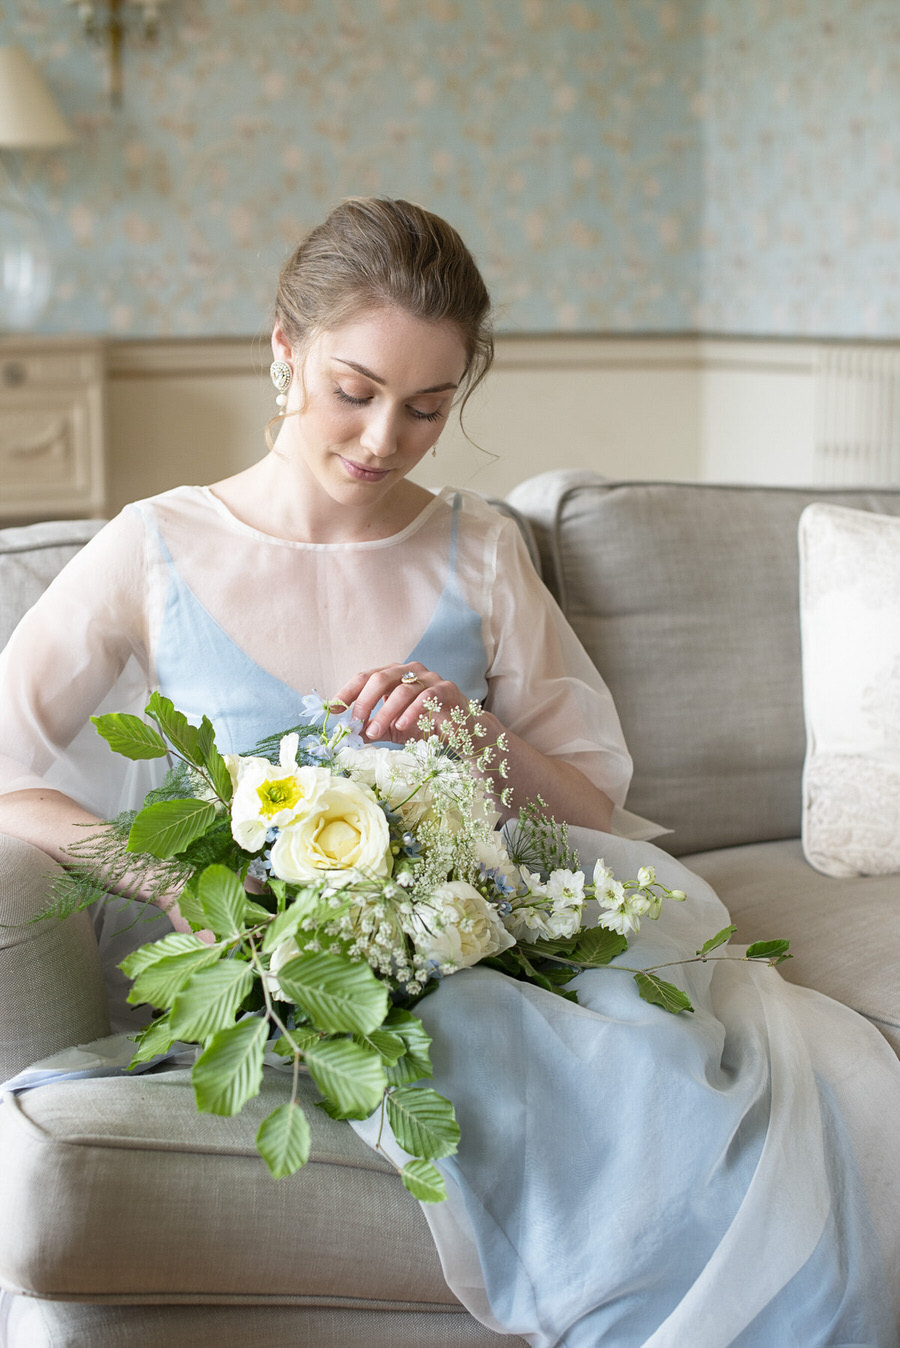 Pynes House wedding styling ideas with Ailsa Munro, Sarah Shuttle and Lottie Ettling PHotography (52)